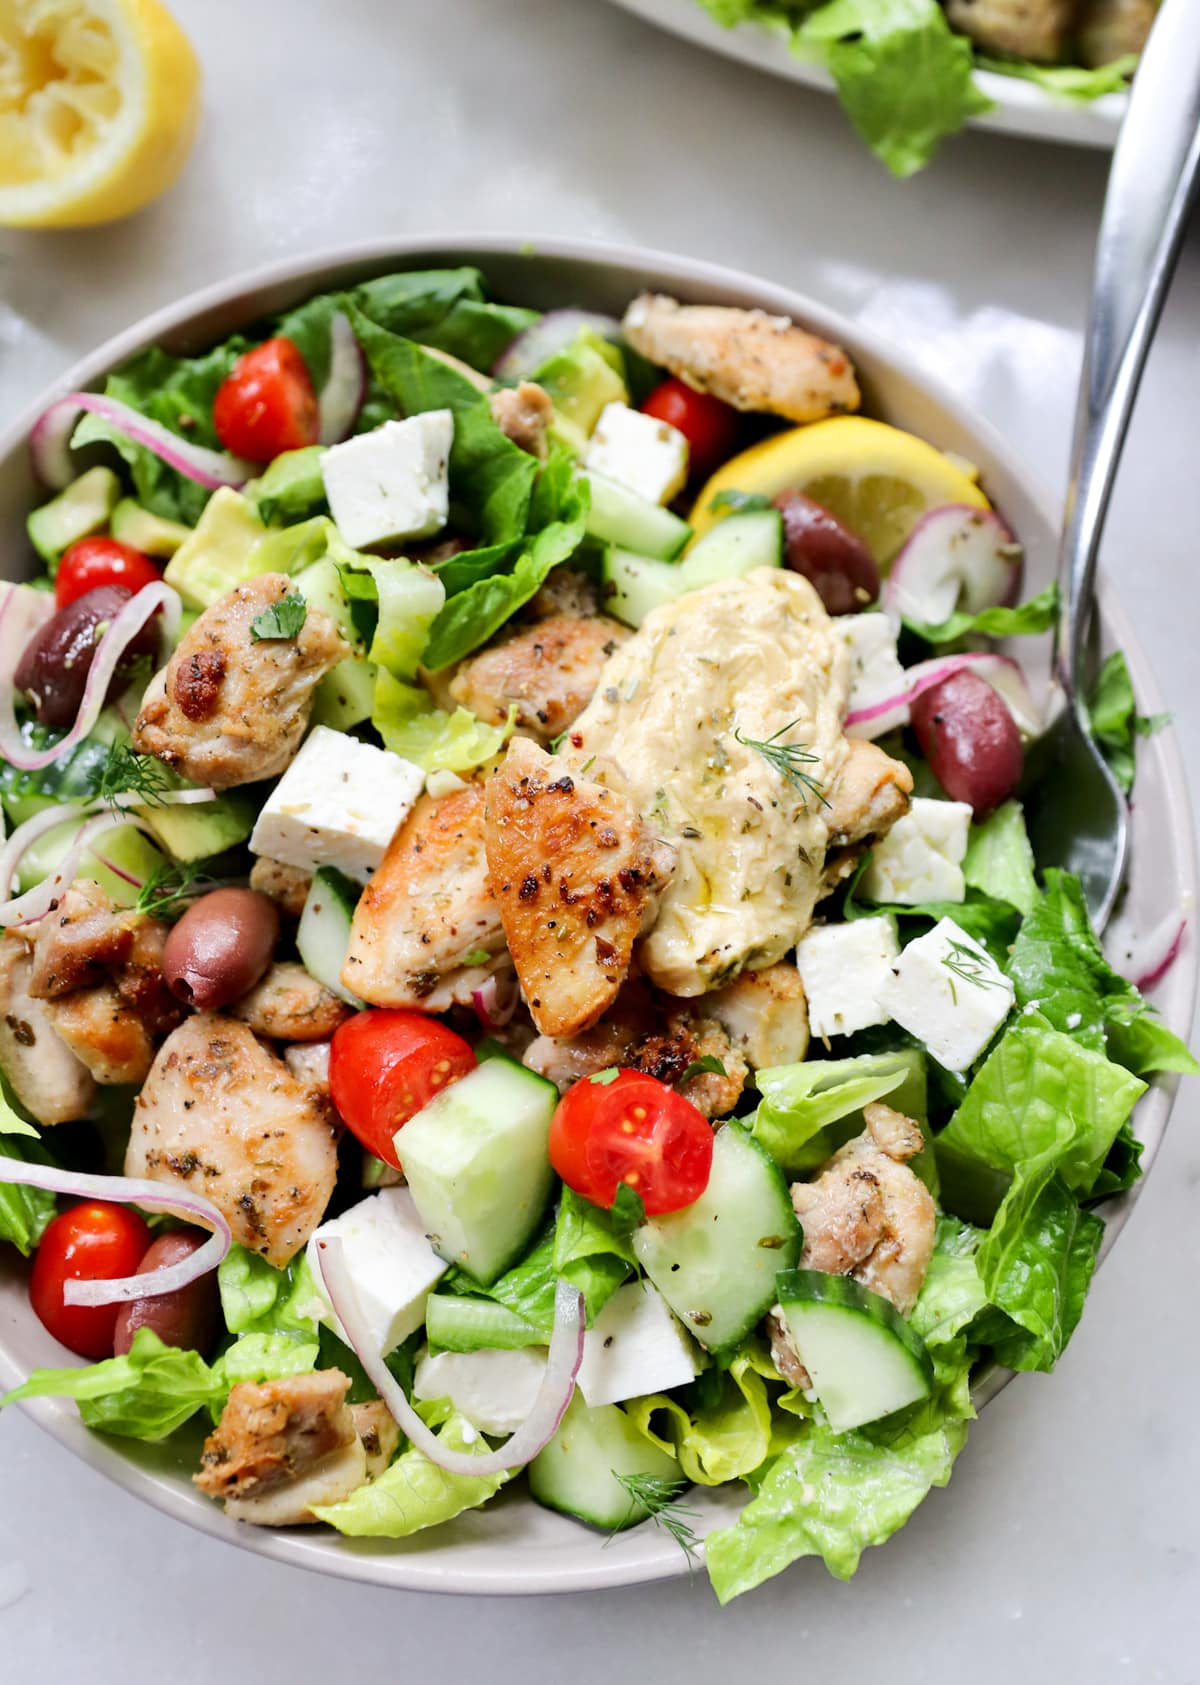 A small bowl filled with the finished salad topped with feta, chicken pieces, and hummus.